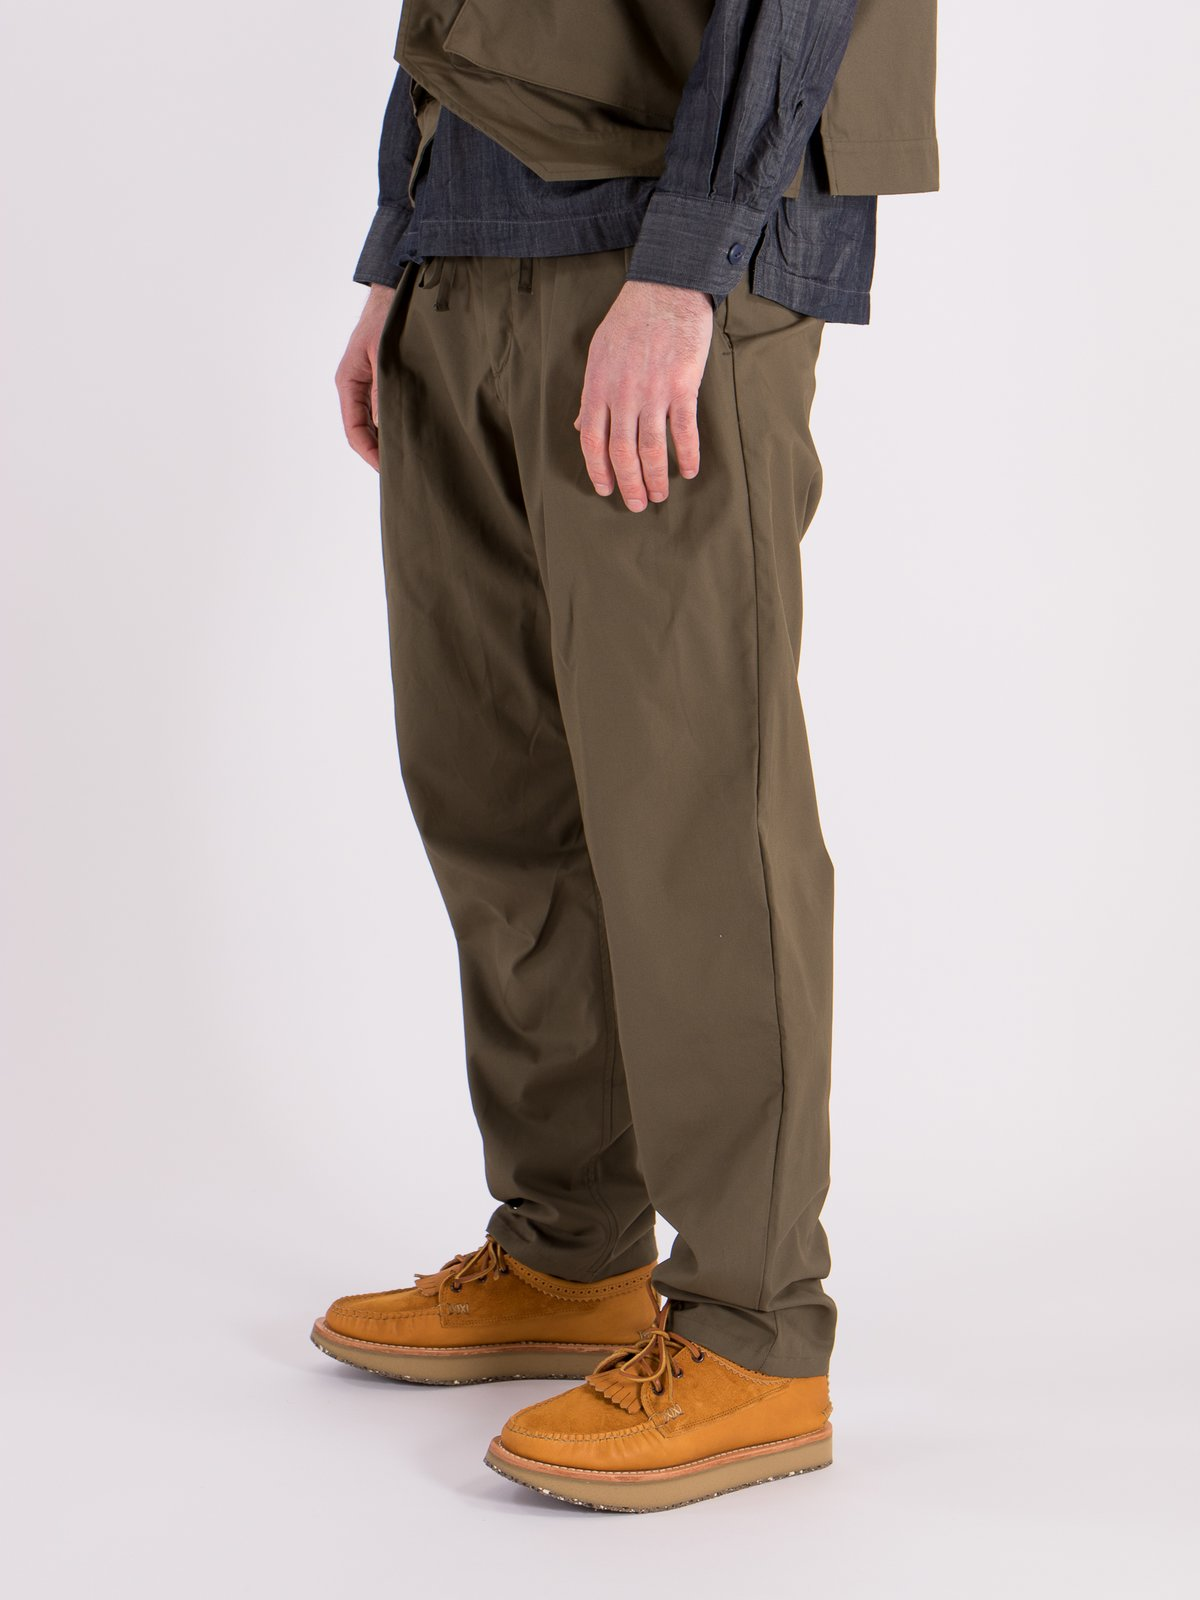 Olive Oxford Vancloth Drop Crotch Pant - Image 2